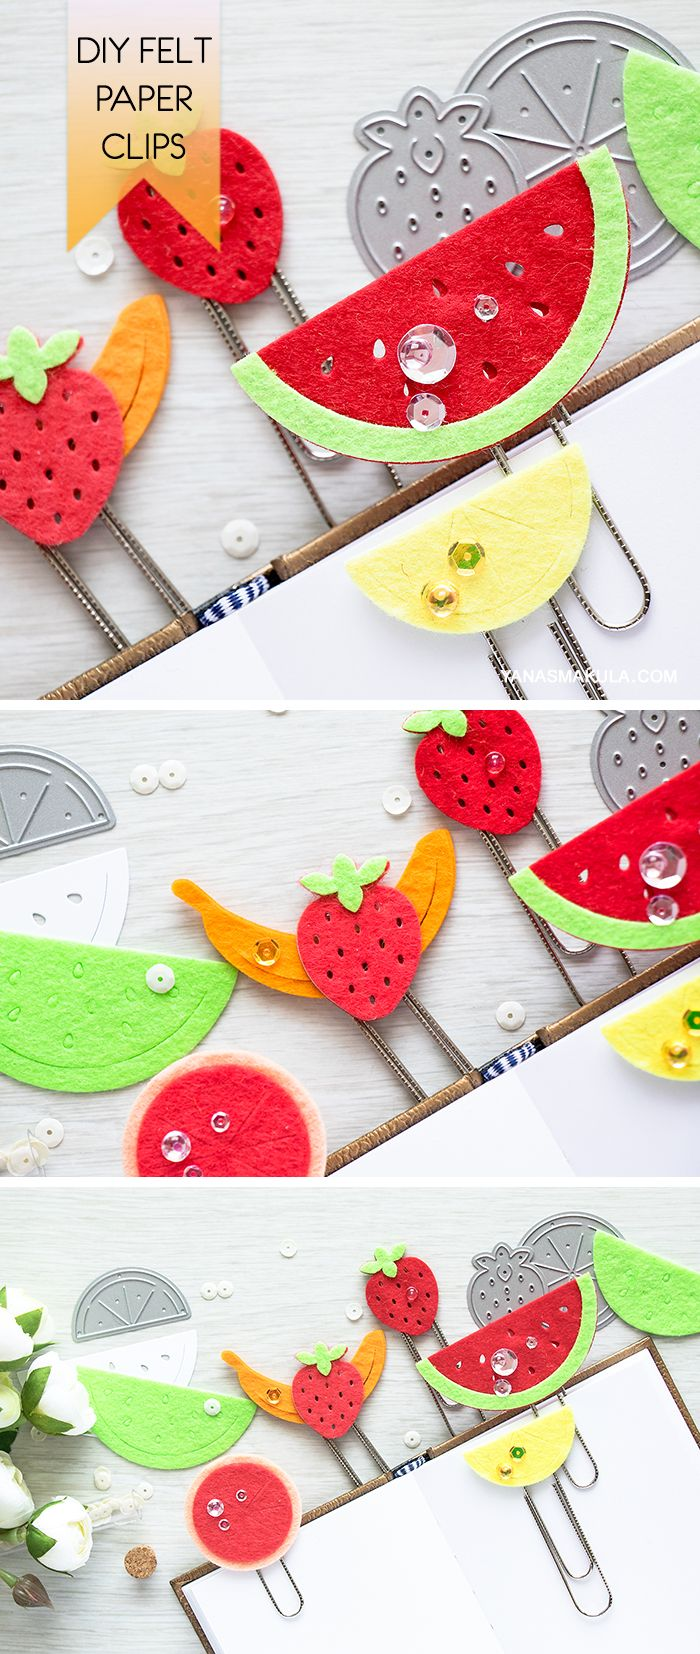 Make these fun DIY Fruity Paper Clips to use are bookmarks or planner dividers using Fruit Salad Dies from Hero Arts.   For more details, please visit https://heroarts.com/?p=67682